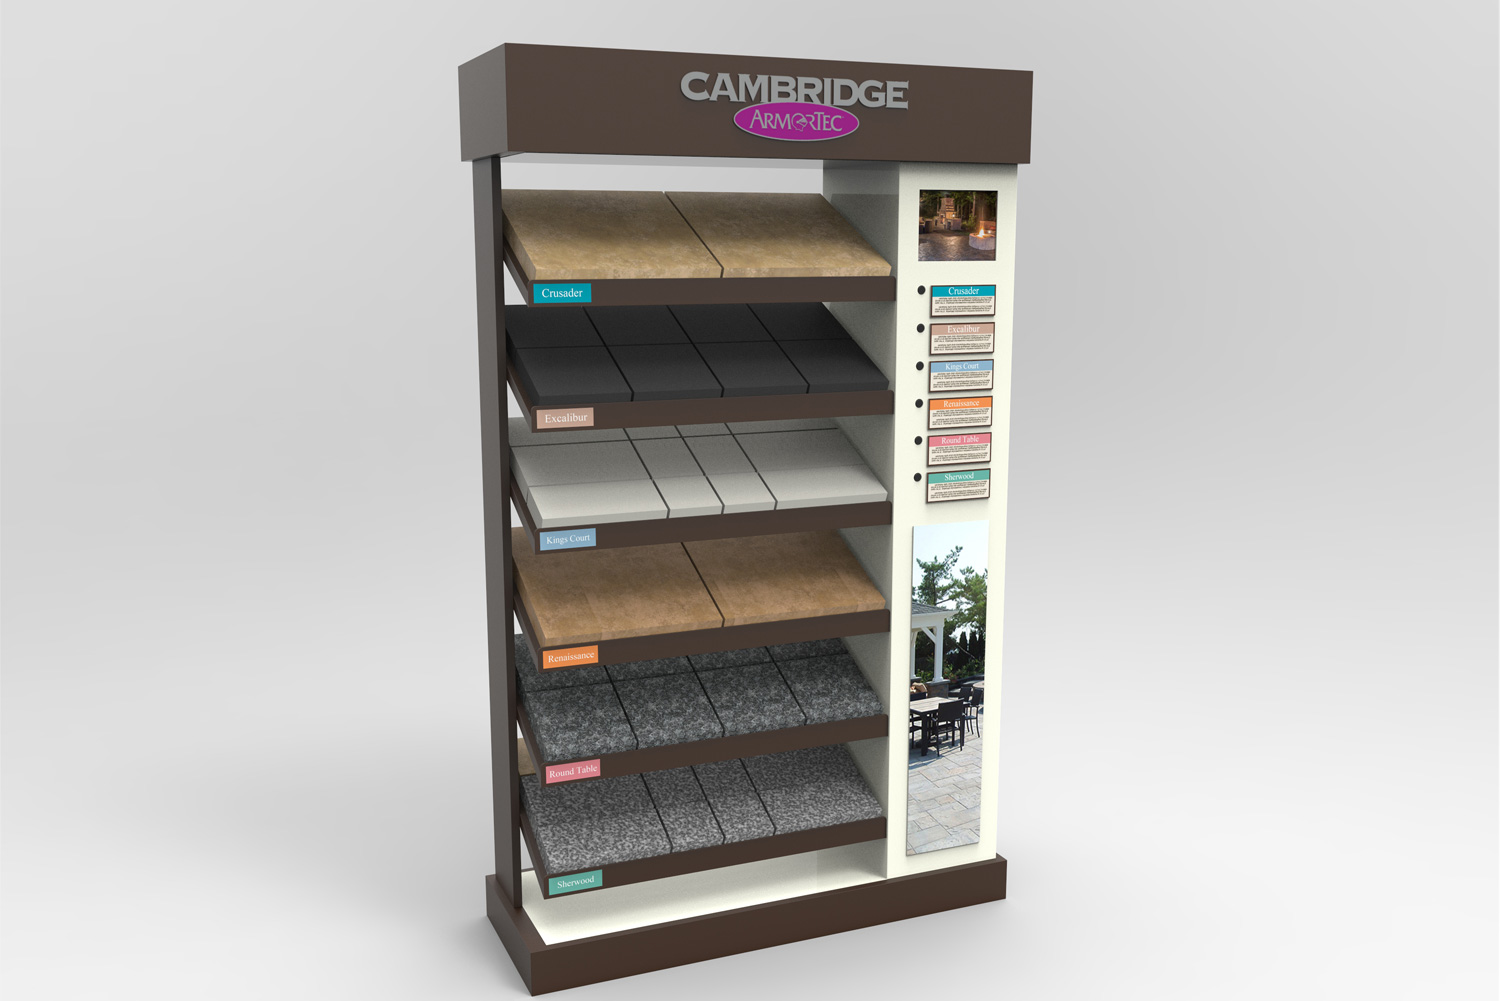 Semi-Permanent Displays for Cambridge